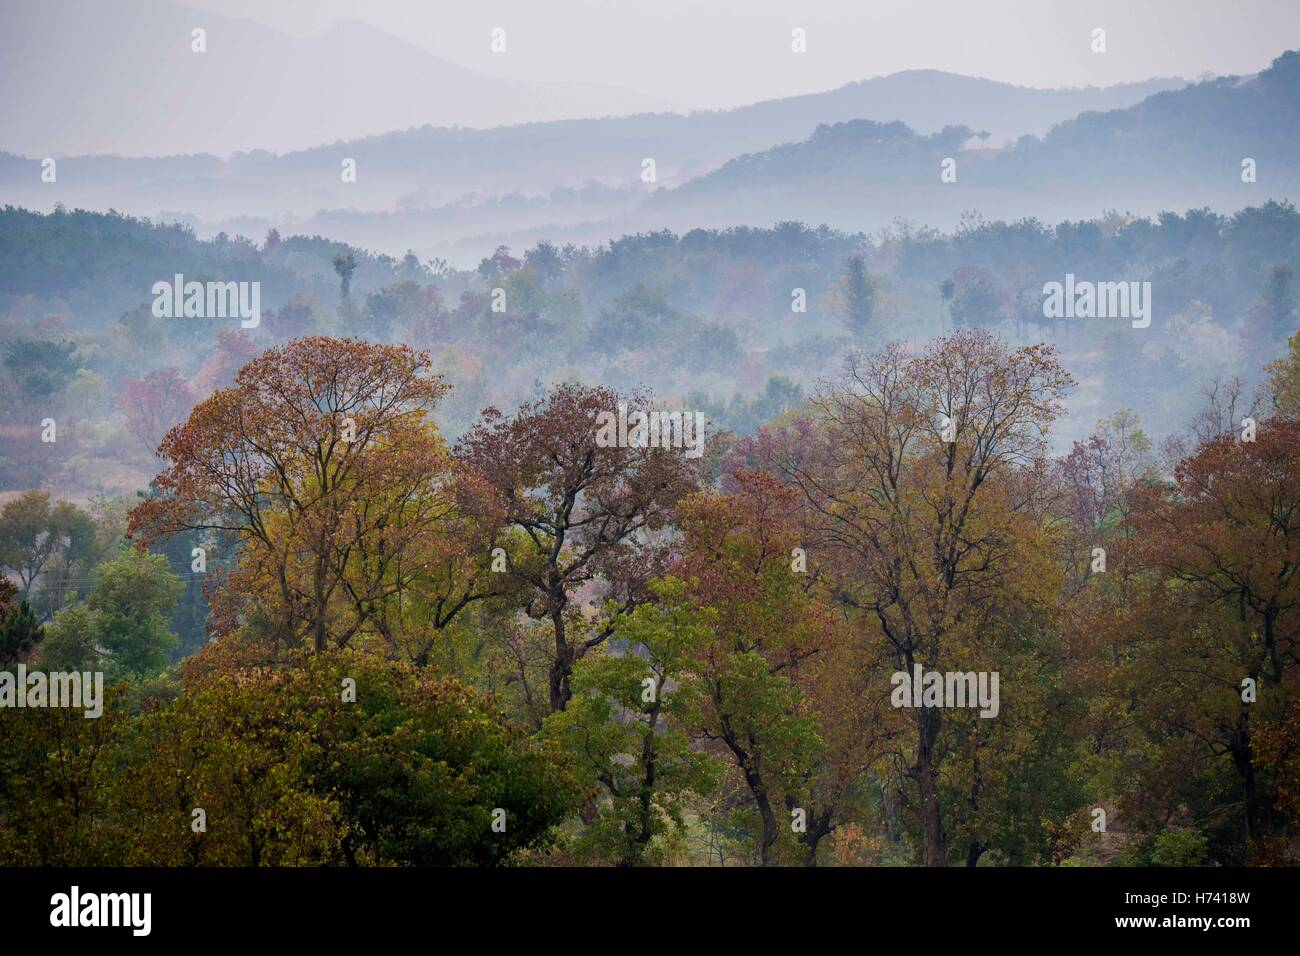 Dawu. 2nd Nov, 2016. Photo taken on Nov. 2, 2016 shows Chinese tallow trees in Beishan Village of Dawu County, central - Stock Image